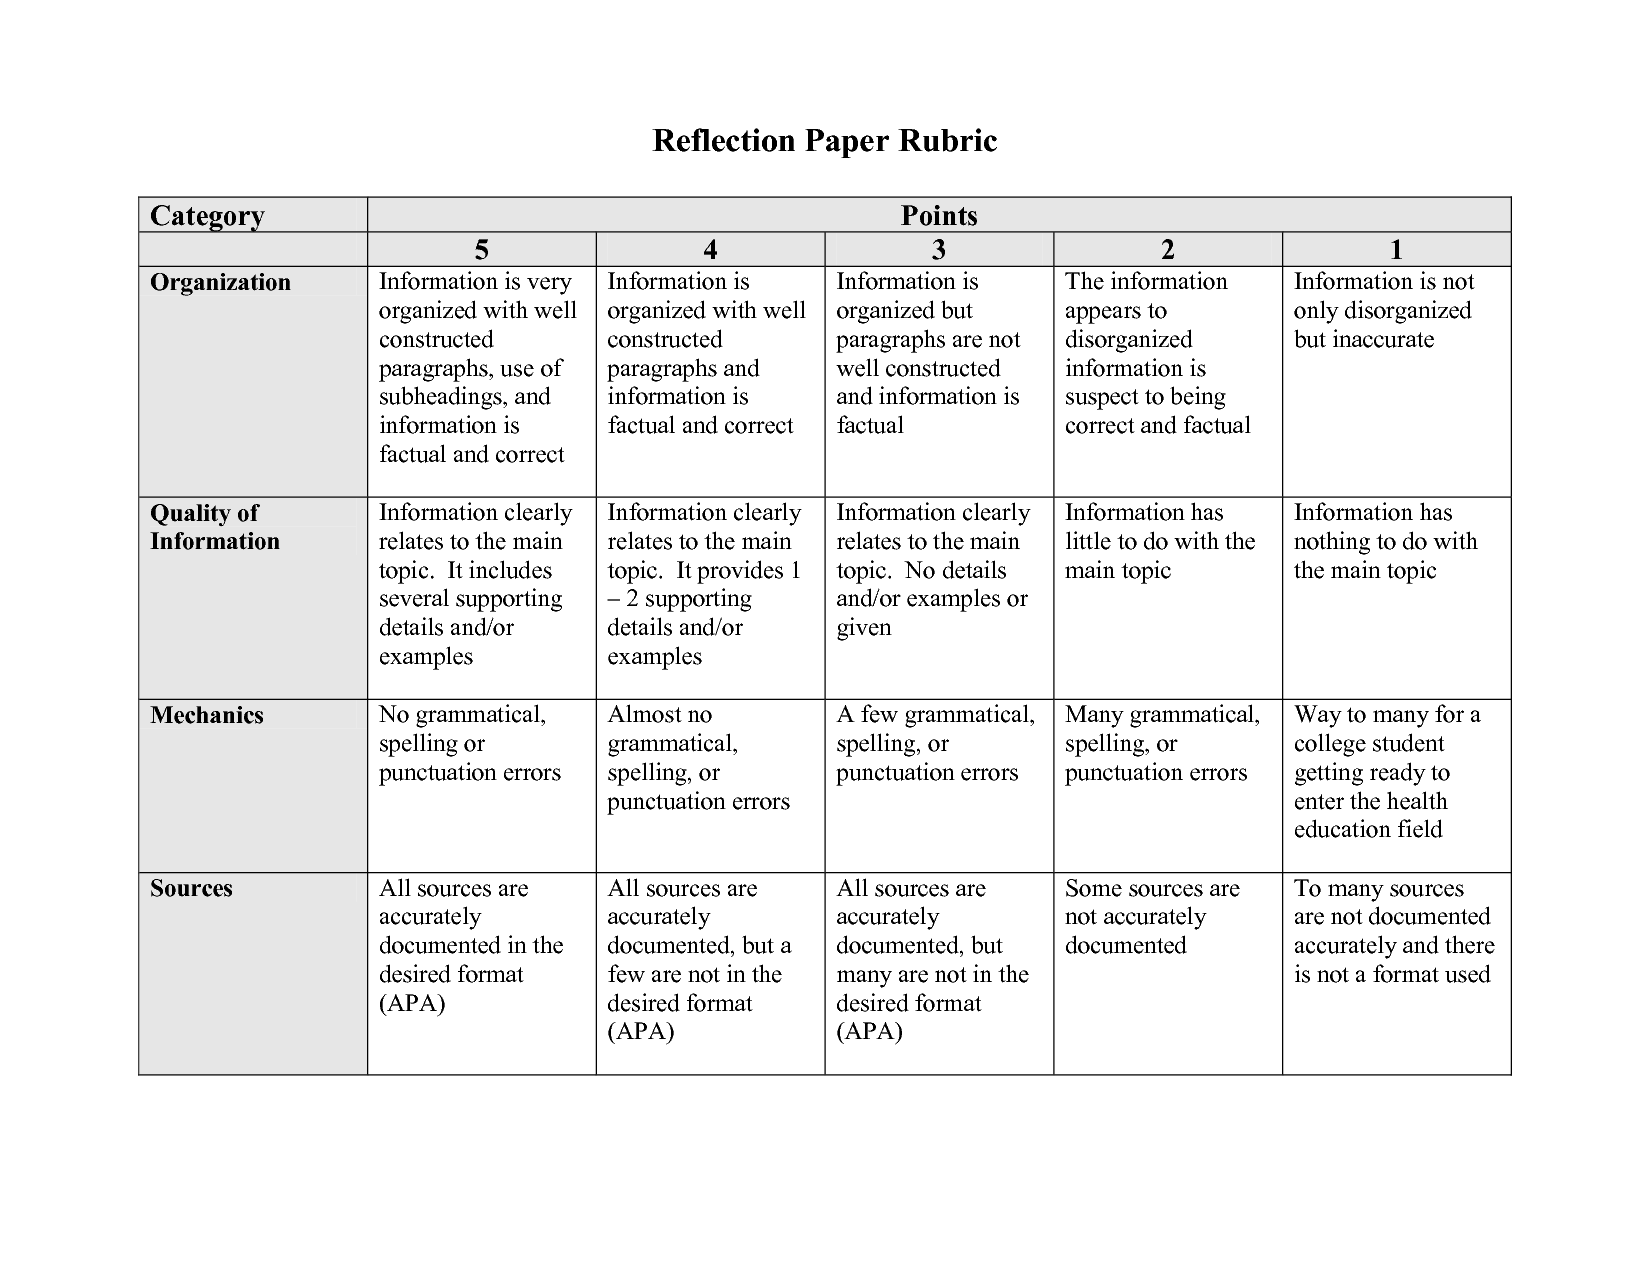 grading rubric for reflection paper